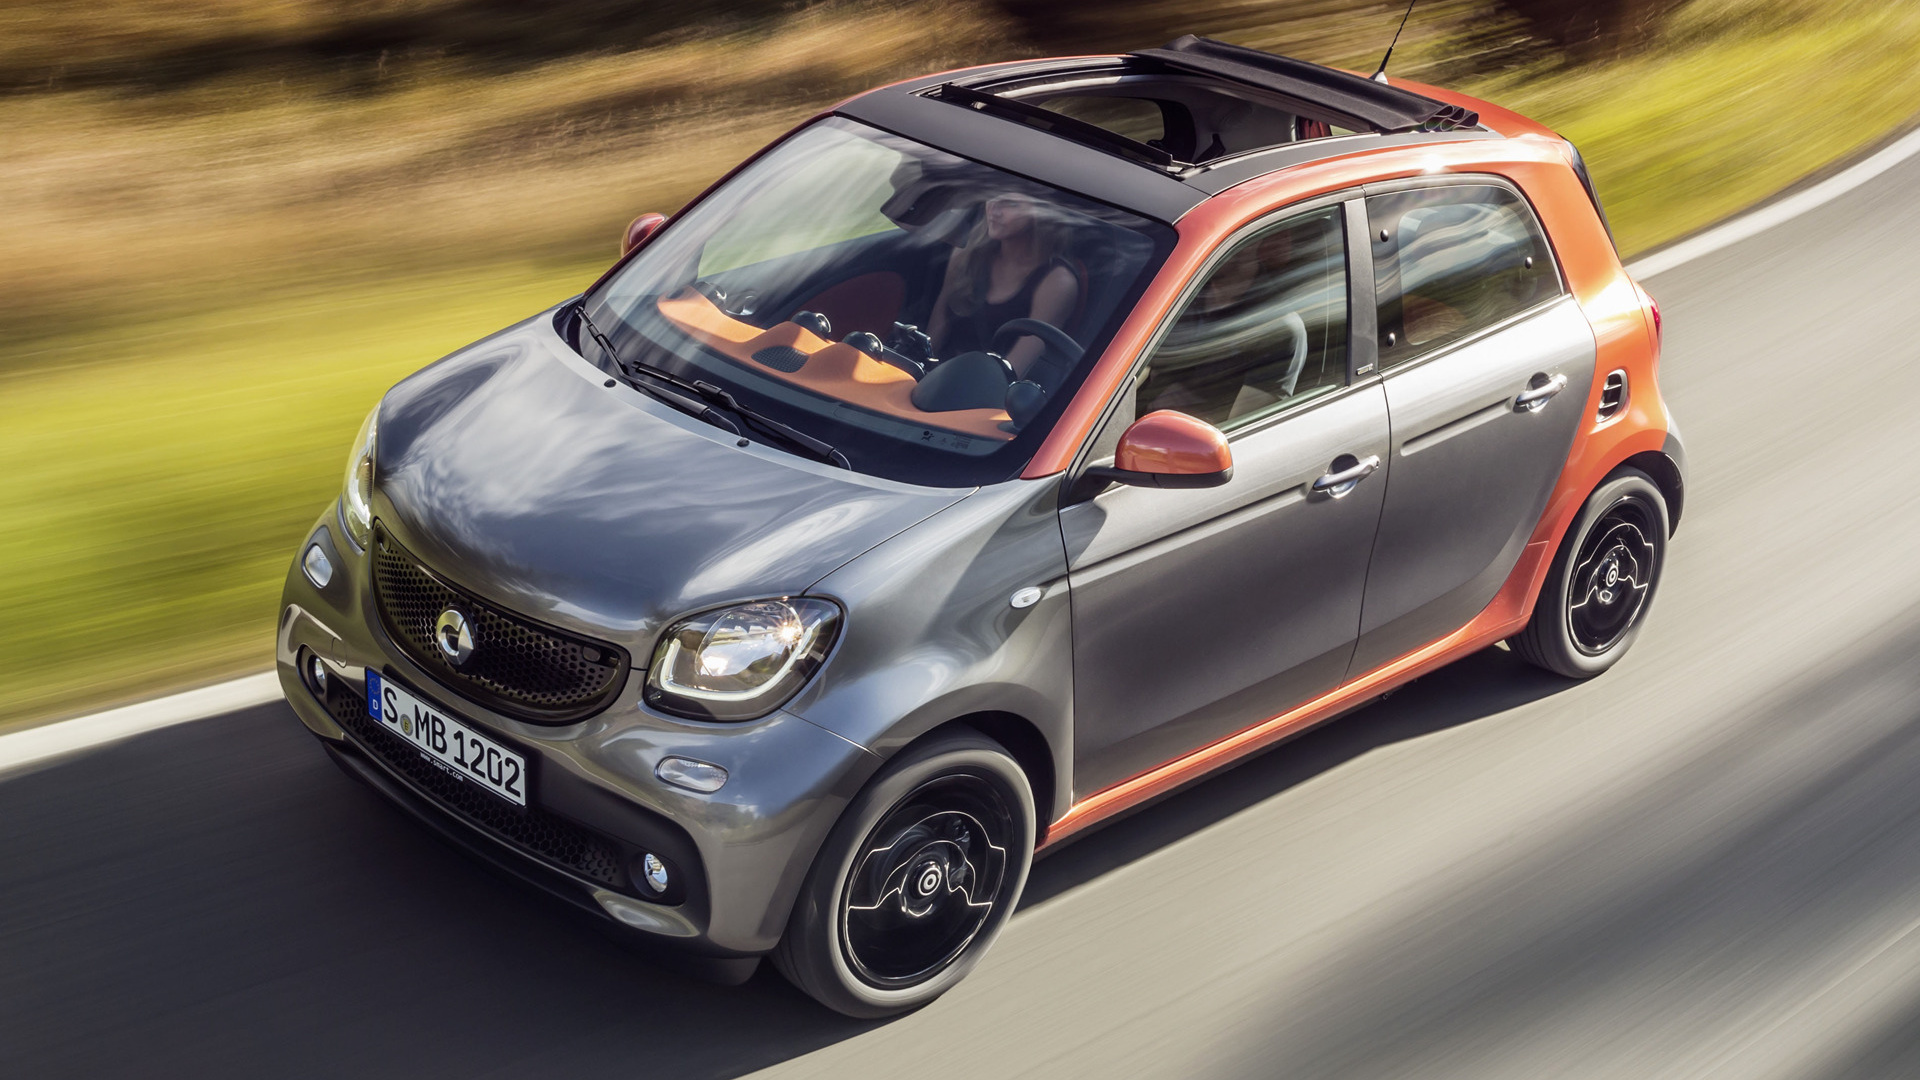 Smart Forfour edition #1 (2014) Wallpapers and HD Images - Car Pixel